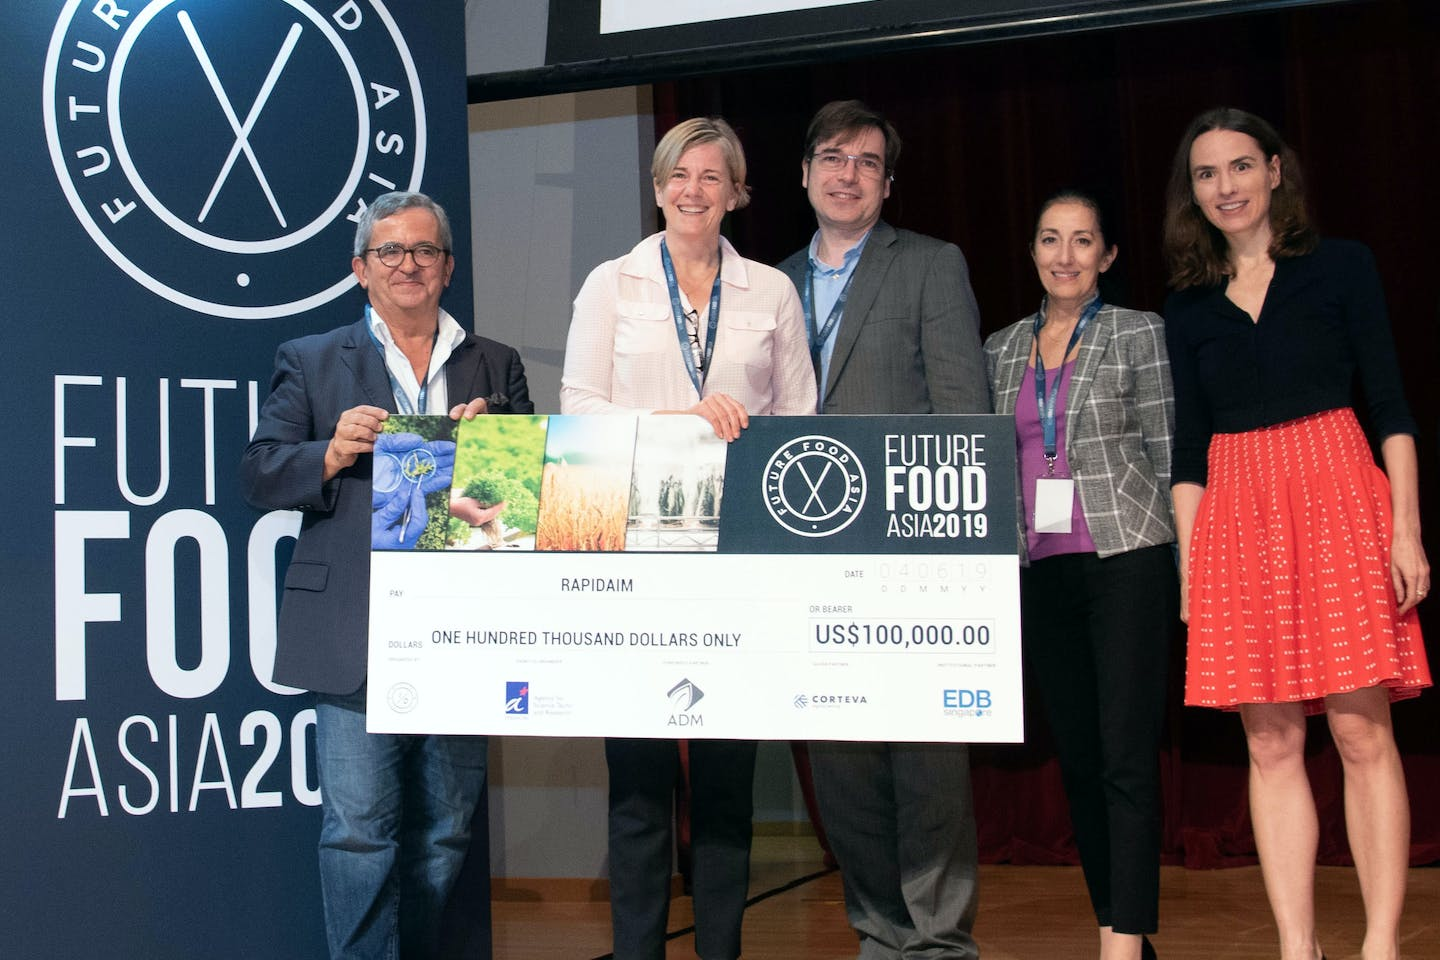 2019 winners announced for Future Food Asia